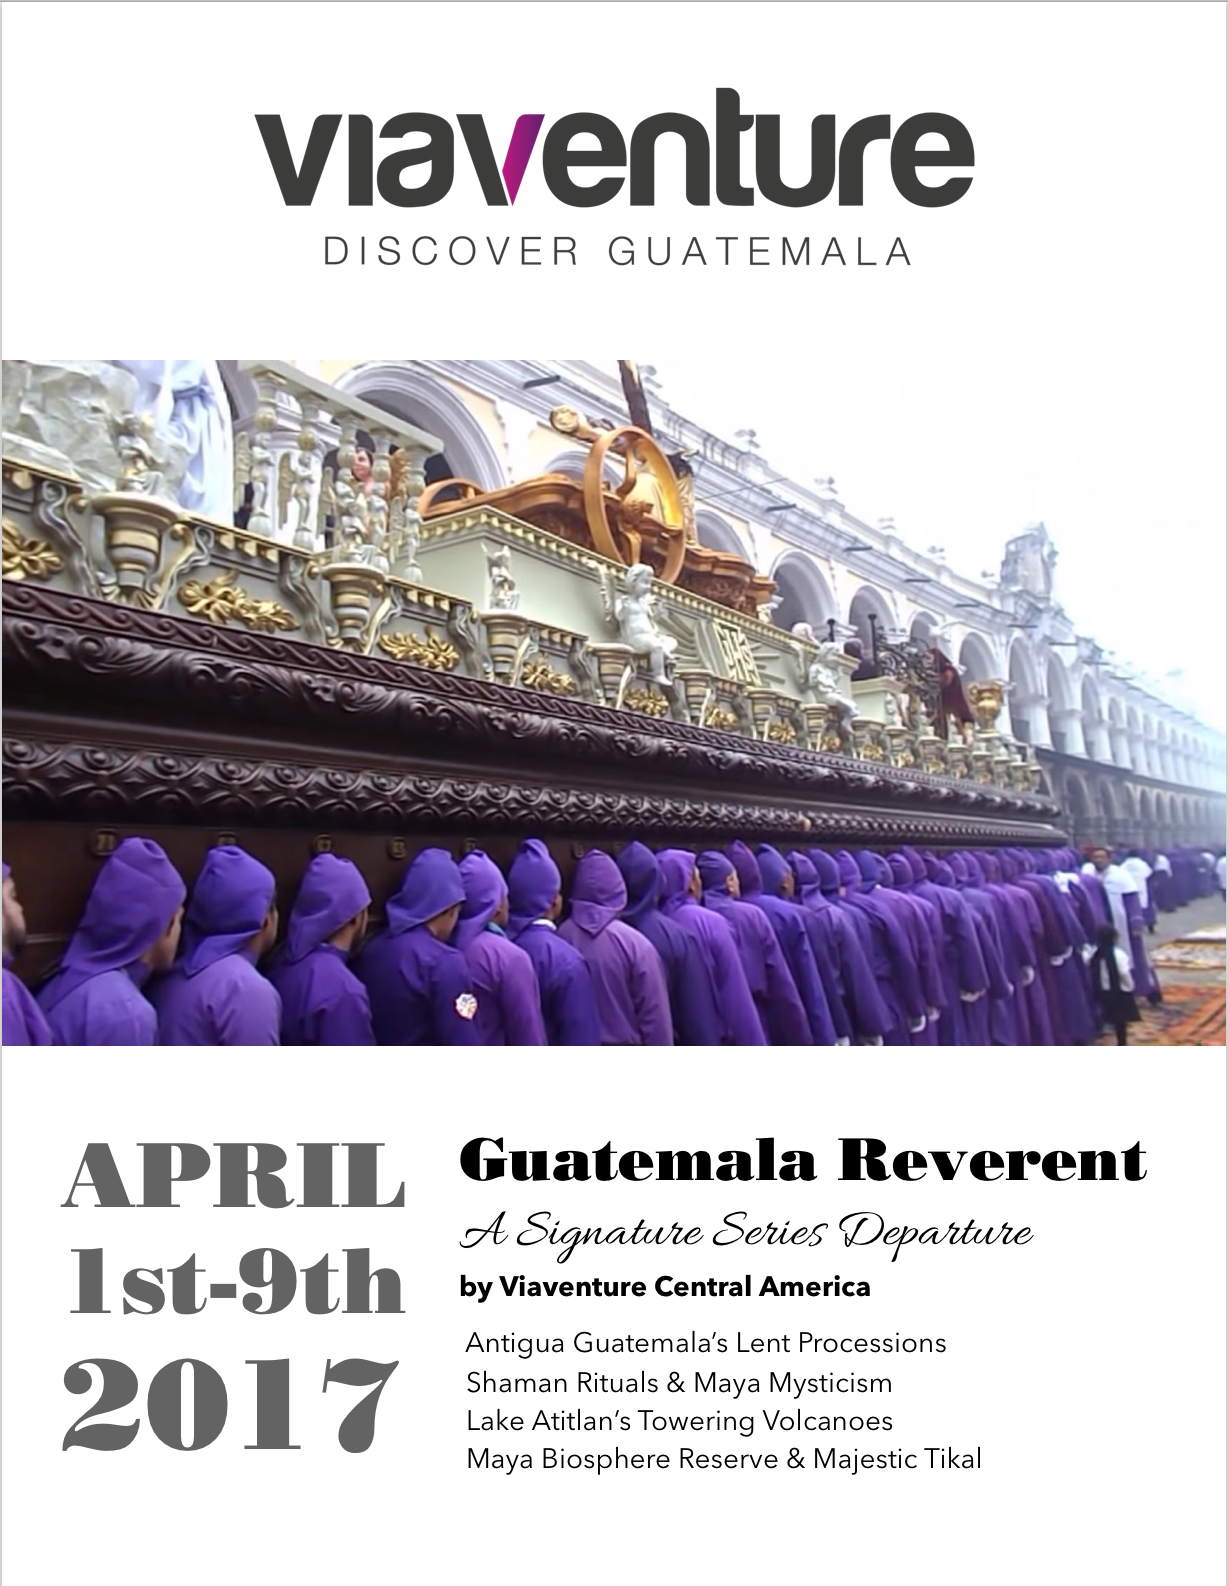 guatemala-reverent-image